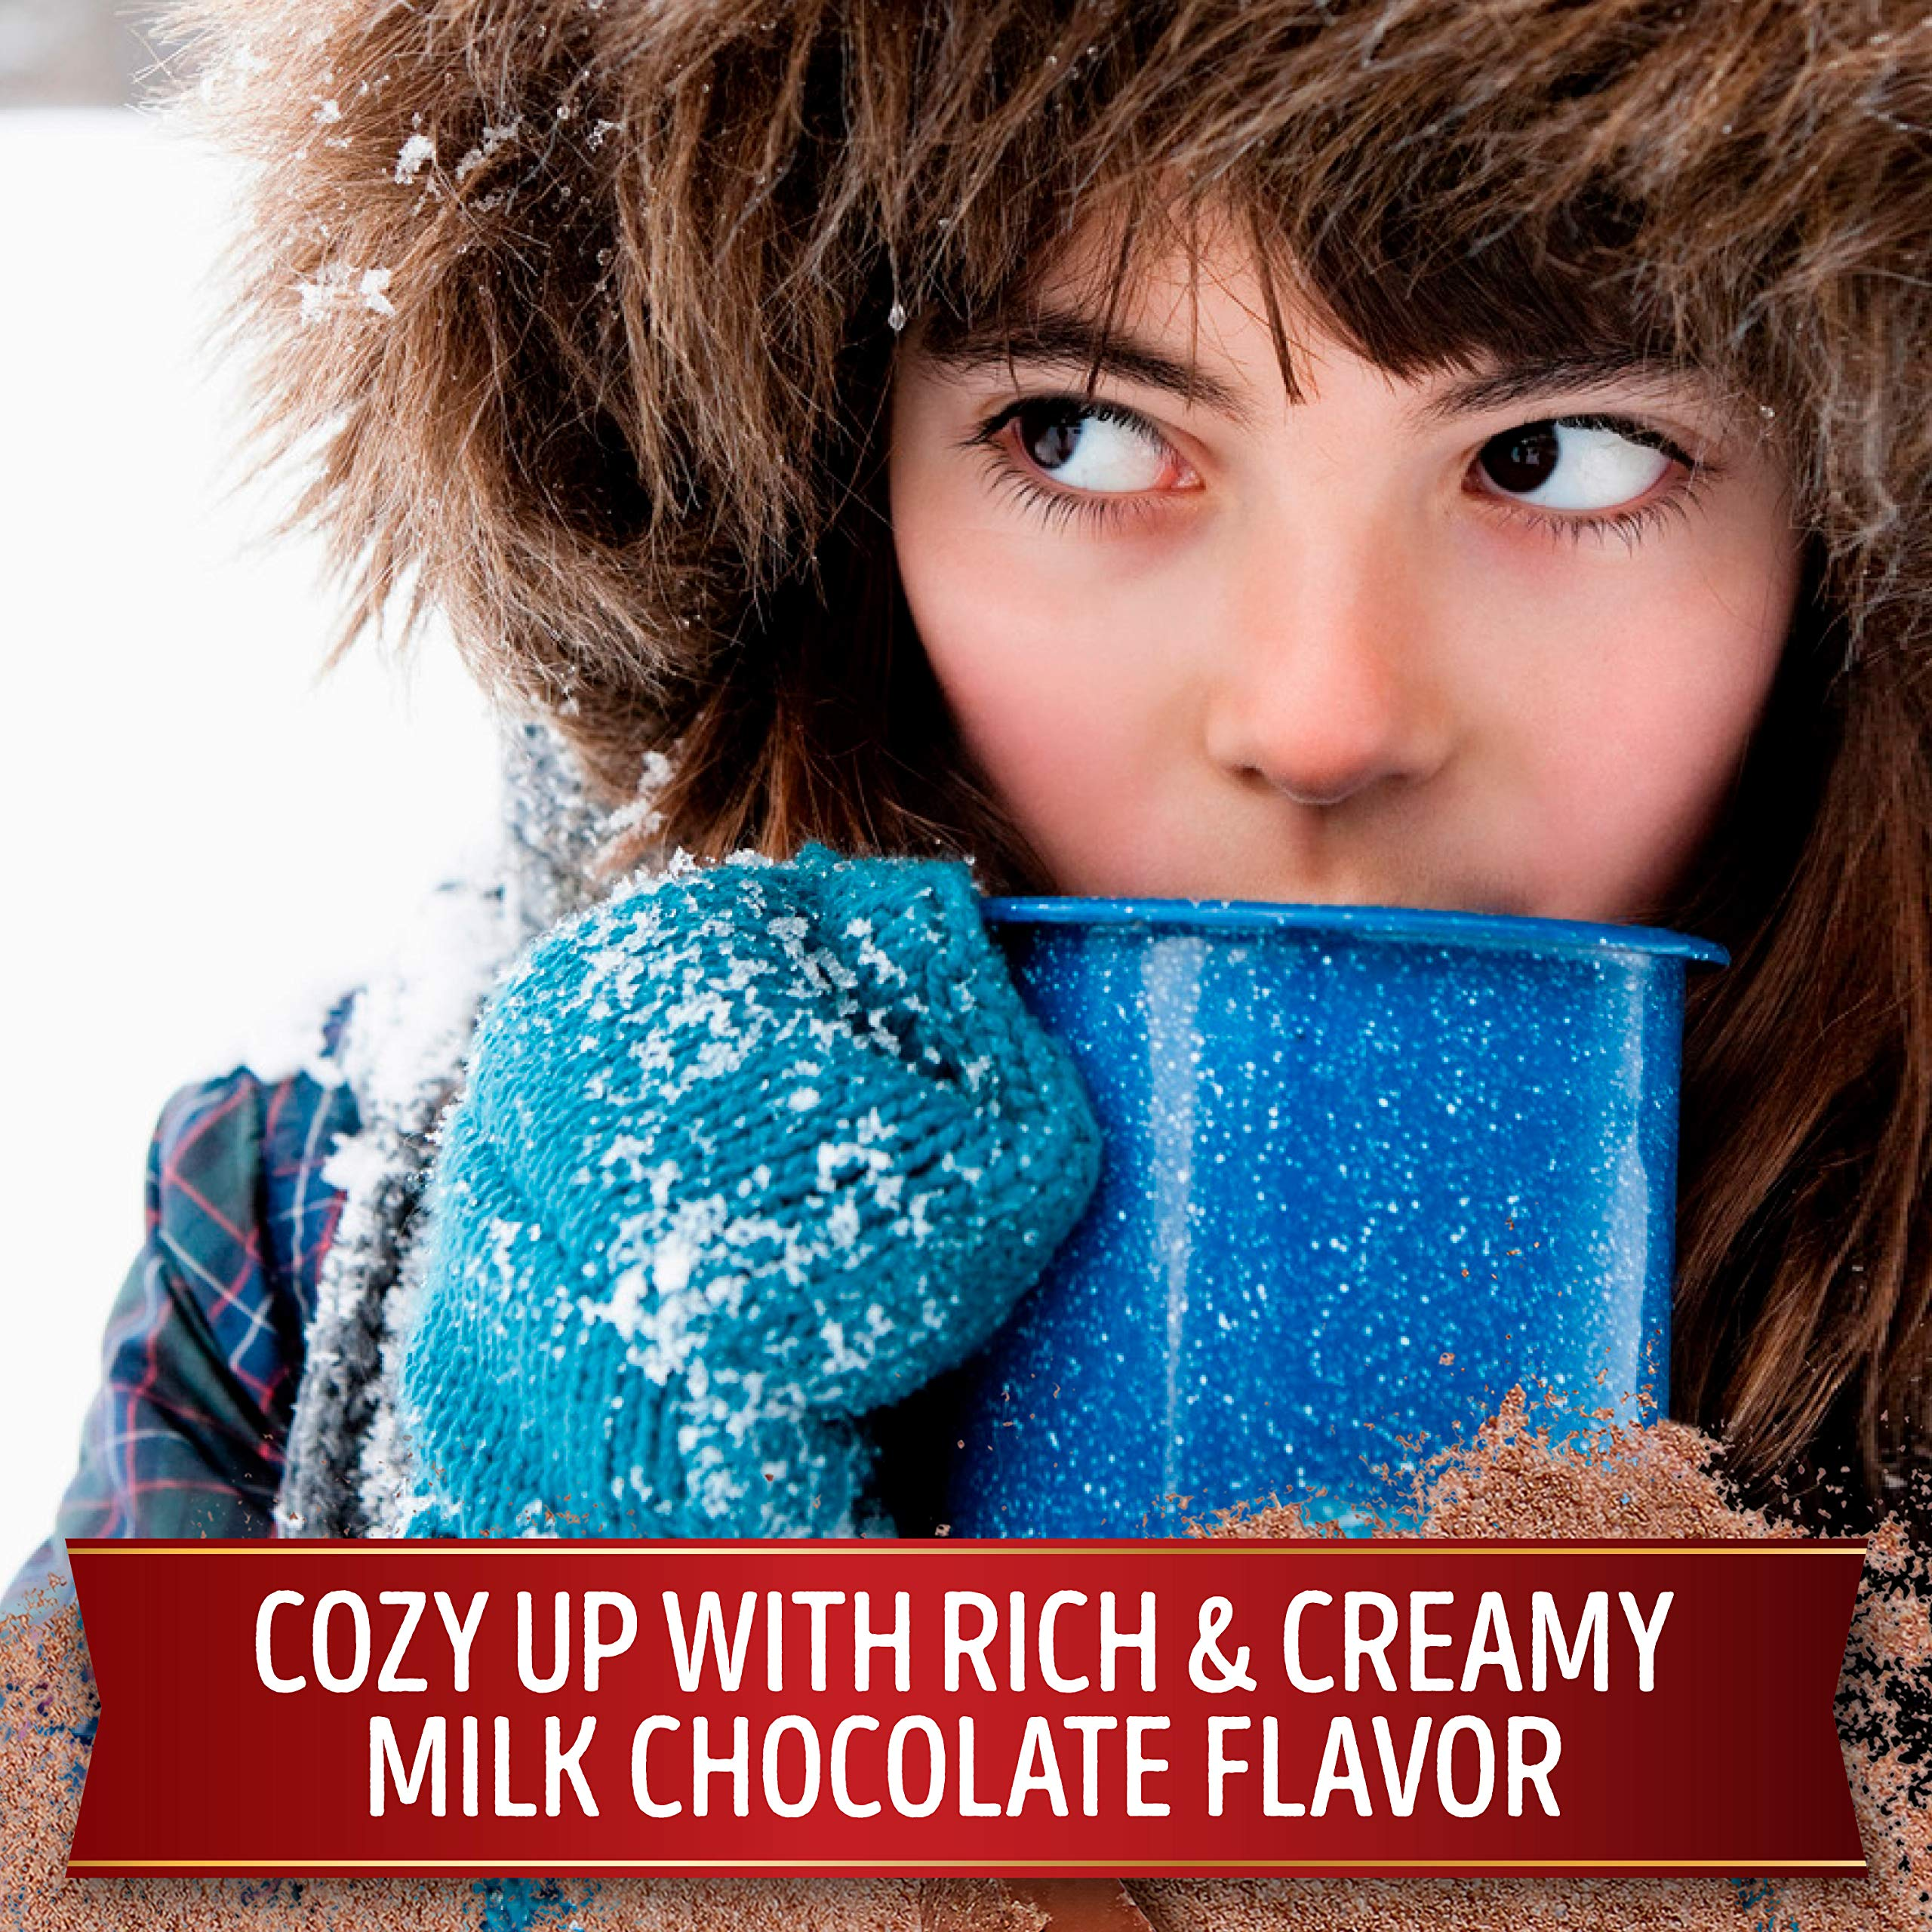 Swiss Miss Milk Chocolate Flavor Hot Cocoa Mix, 11.04 Ounce, 8 Count,(Pack of 12) by Swiss Miss (Image #3)